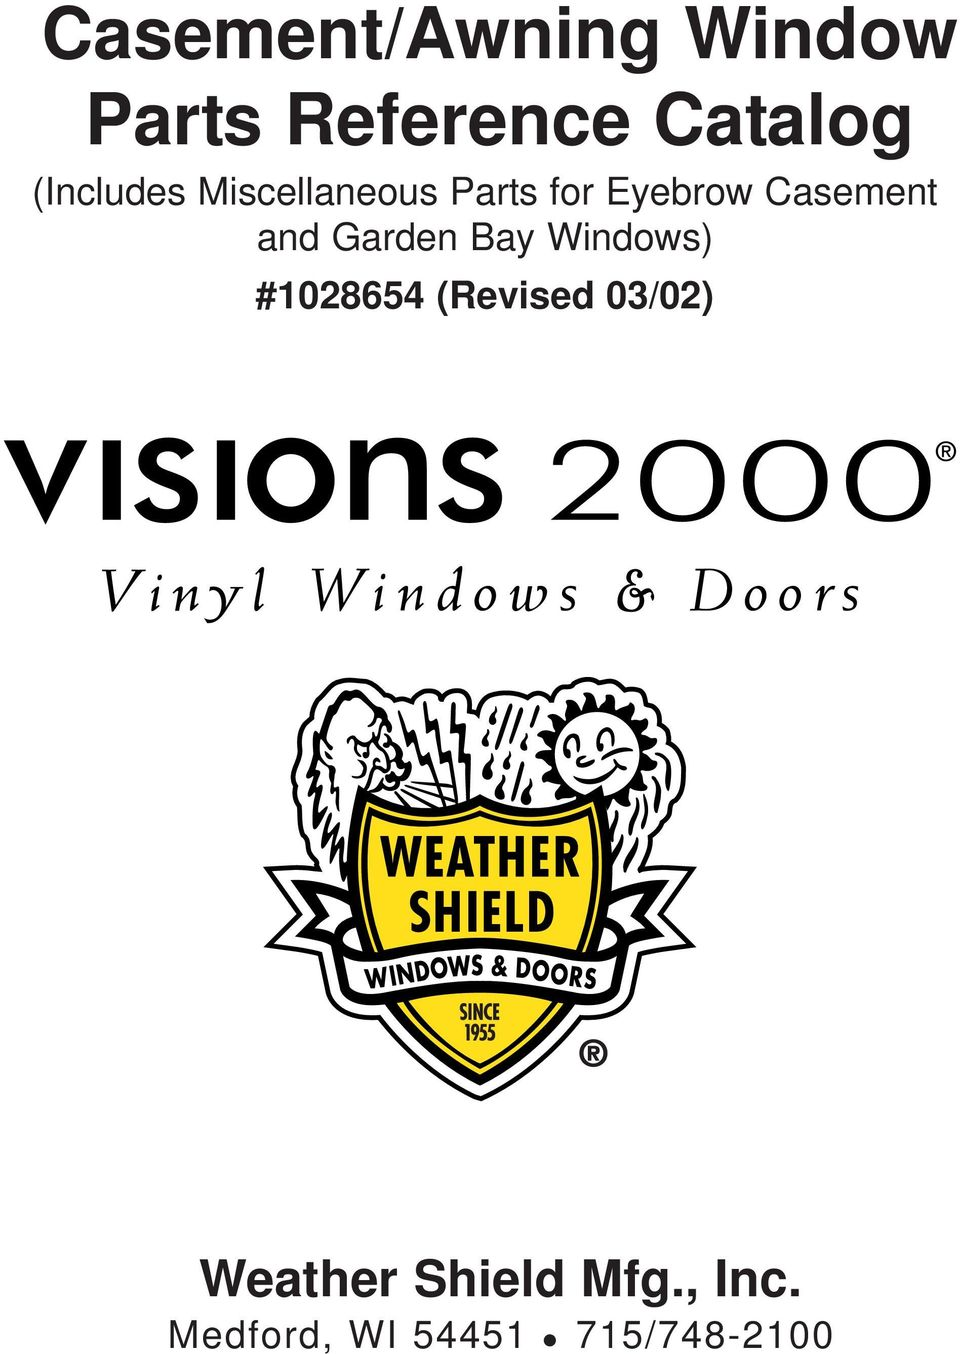 and Garden Bay Windows) #1028654 (Revised 03/02)